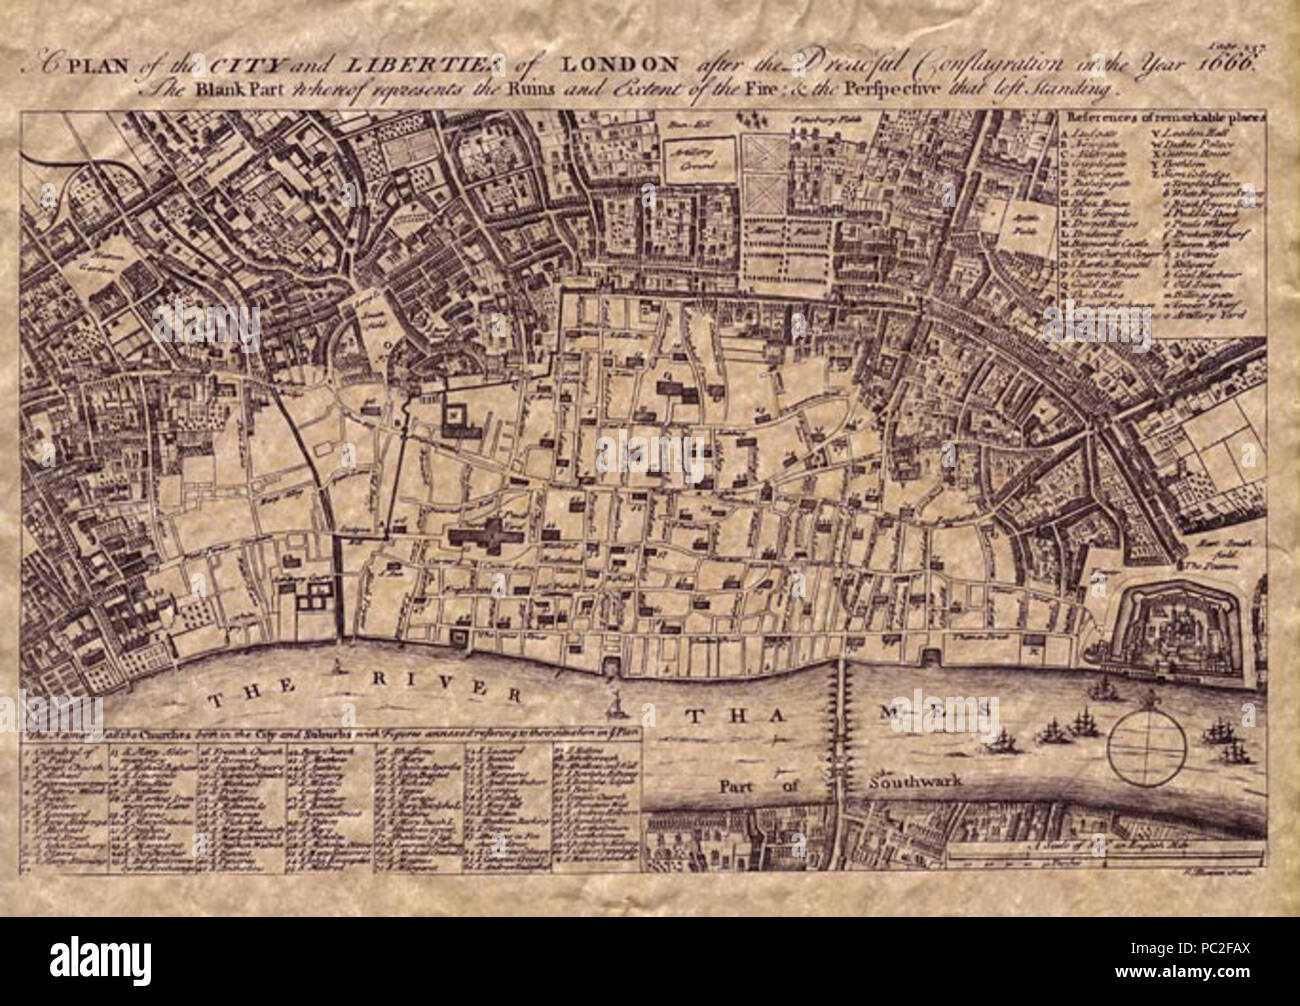 Great Fire Of London Map.454 Old Maps The Great Fire Of London Stock Photo 213956258 Alamy